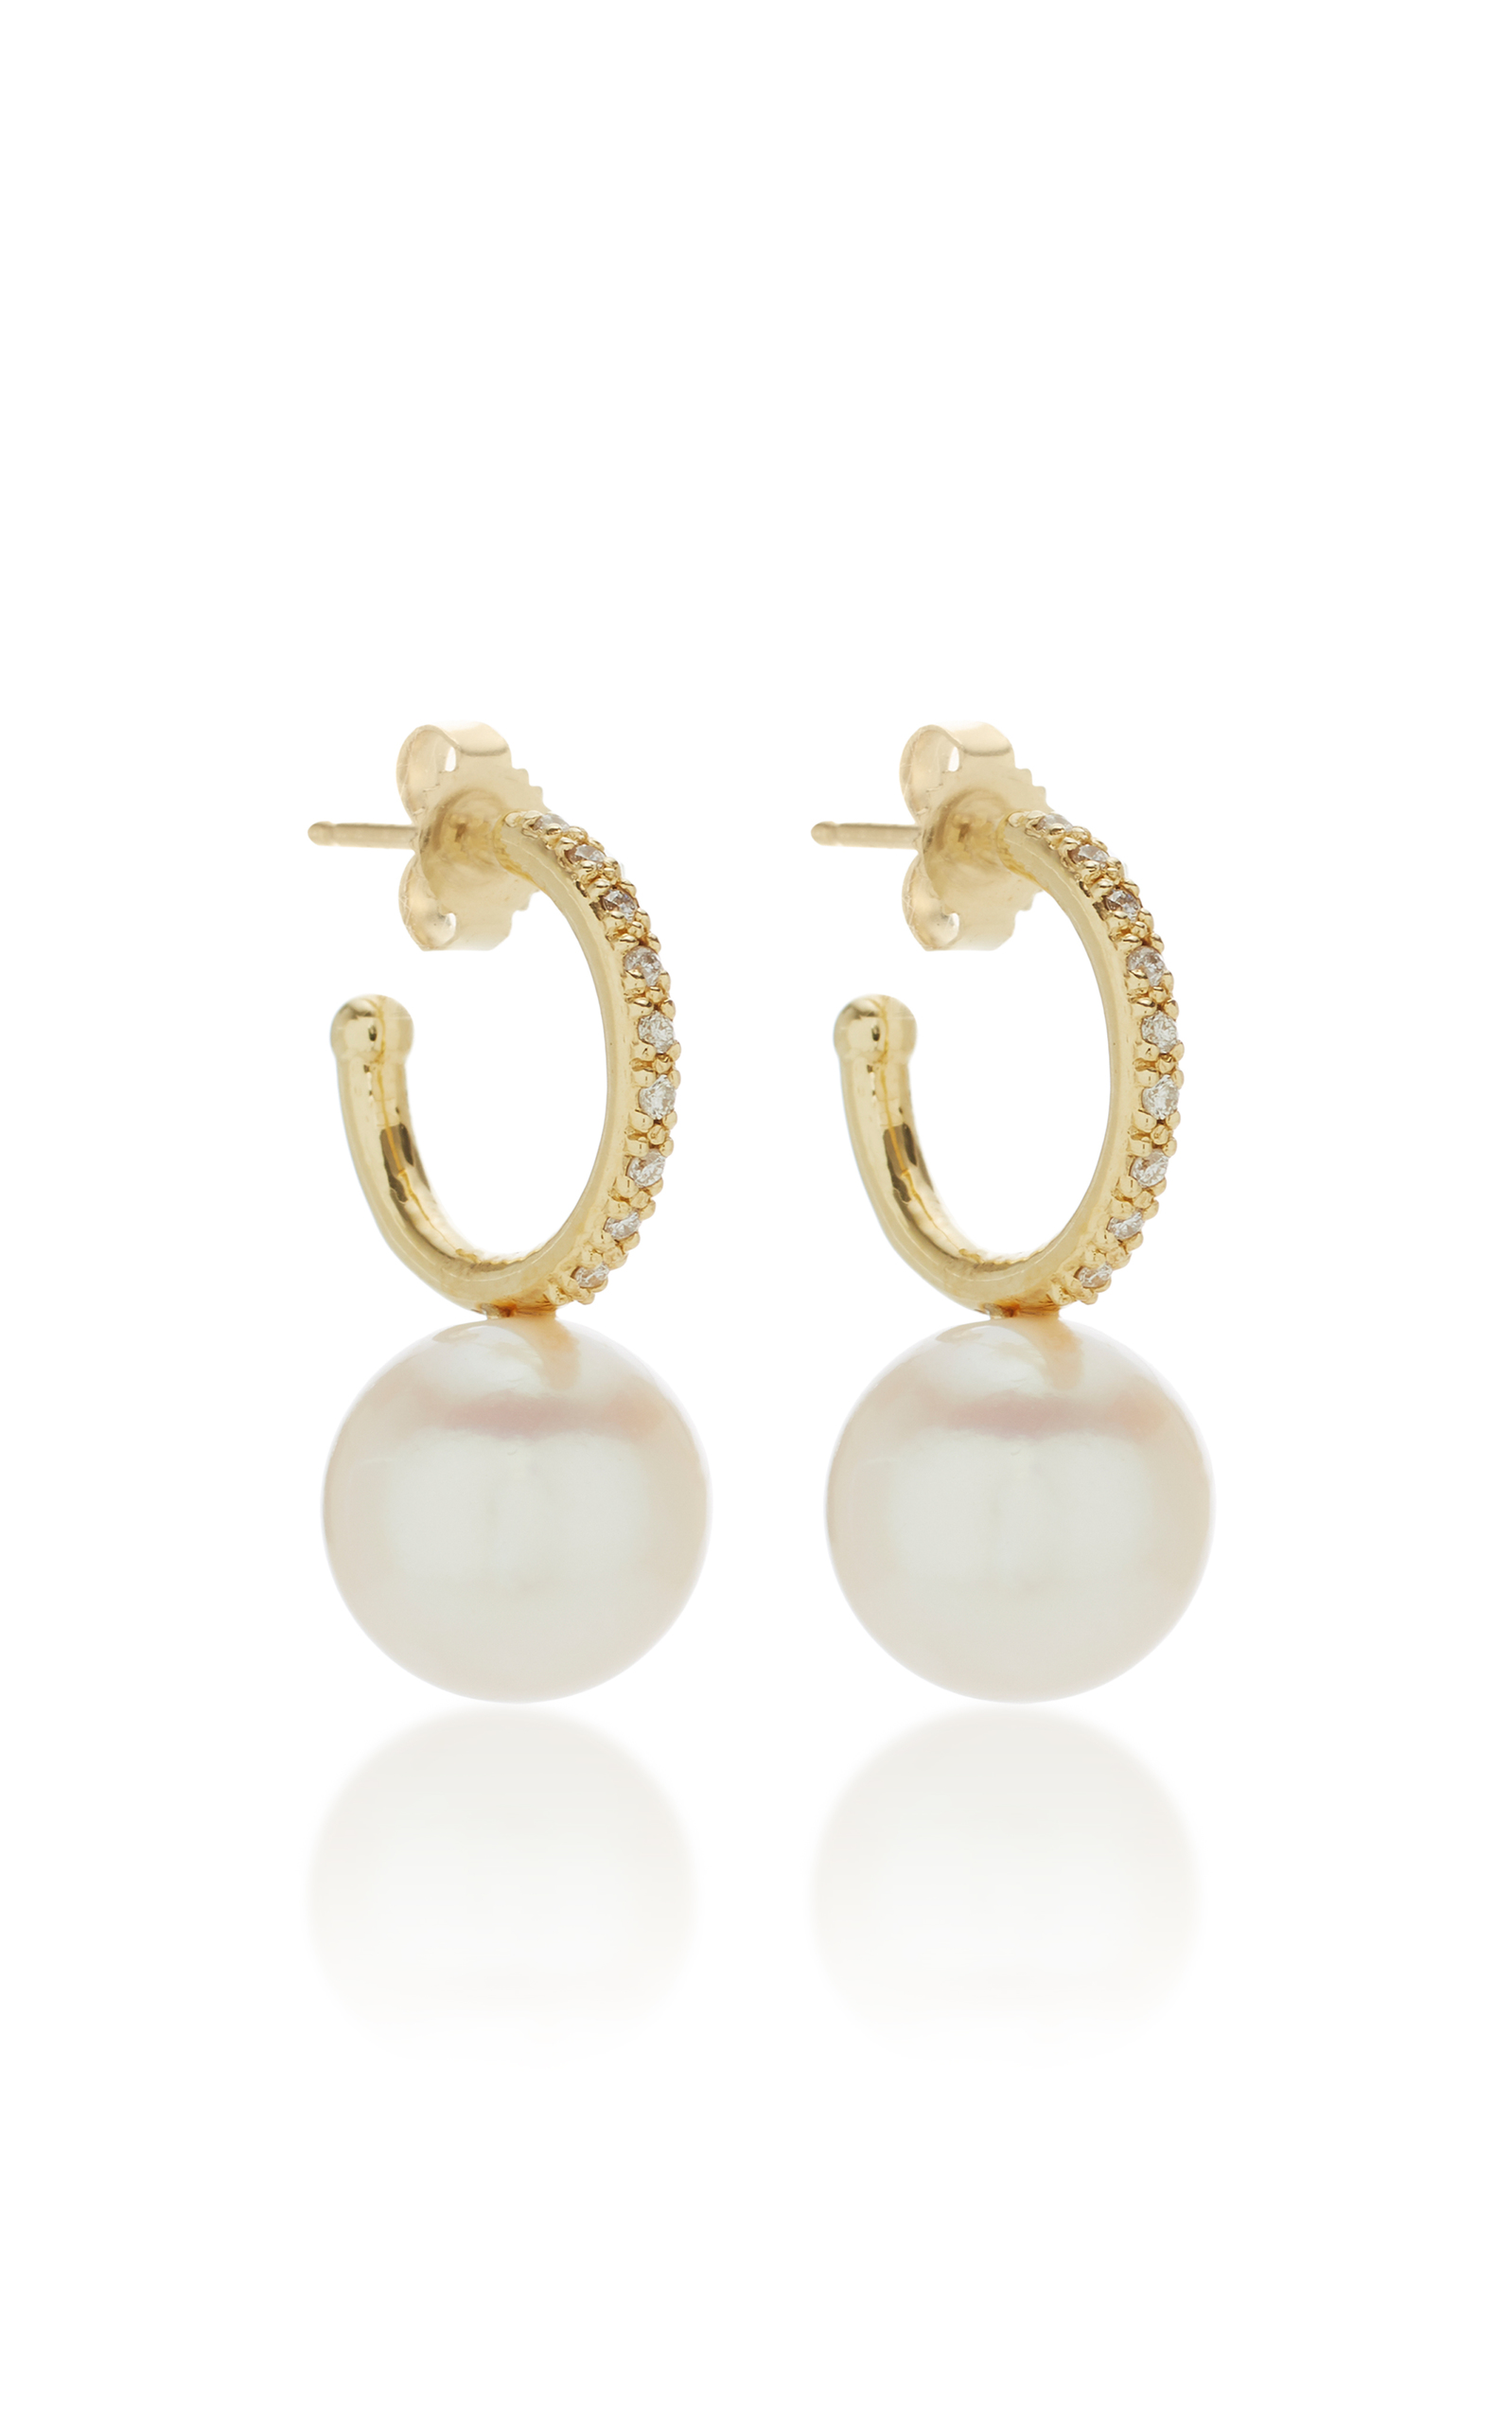 diamond white hoop earrings gold en kay zm accents mv kaystore small round